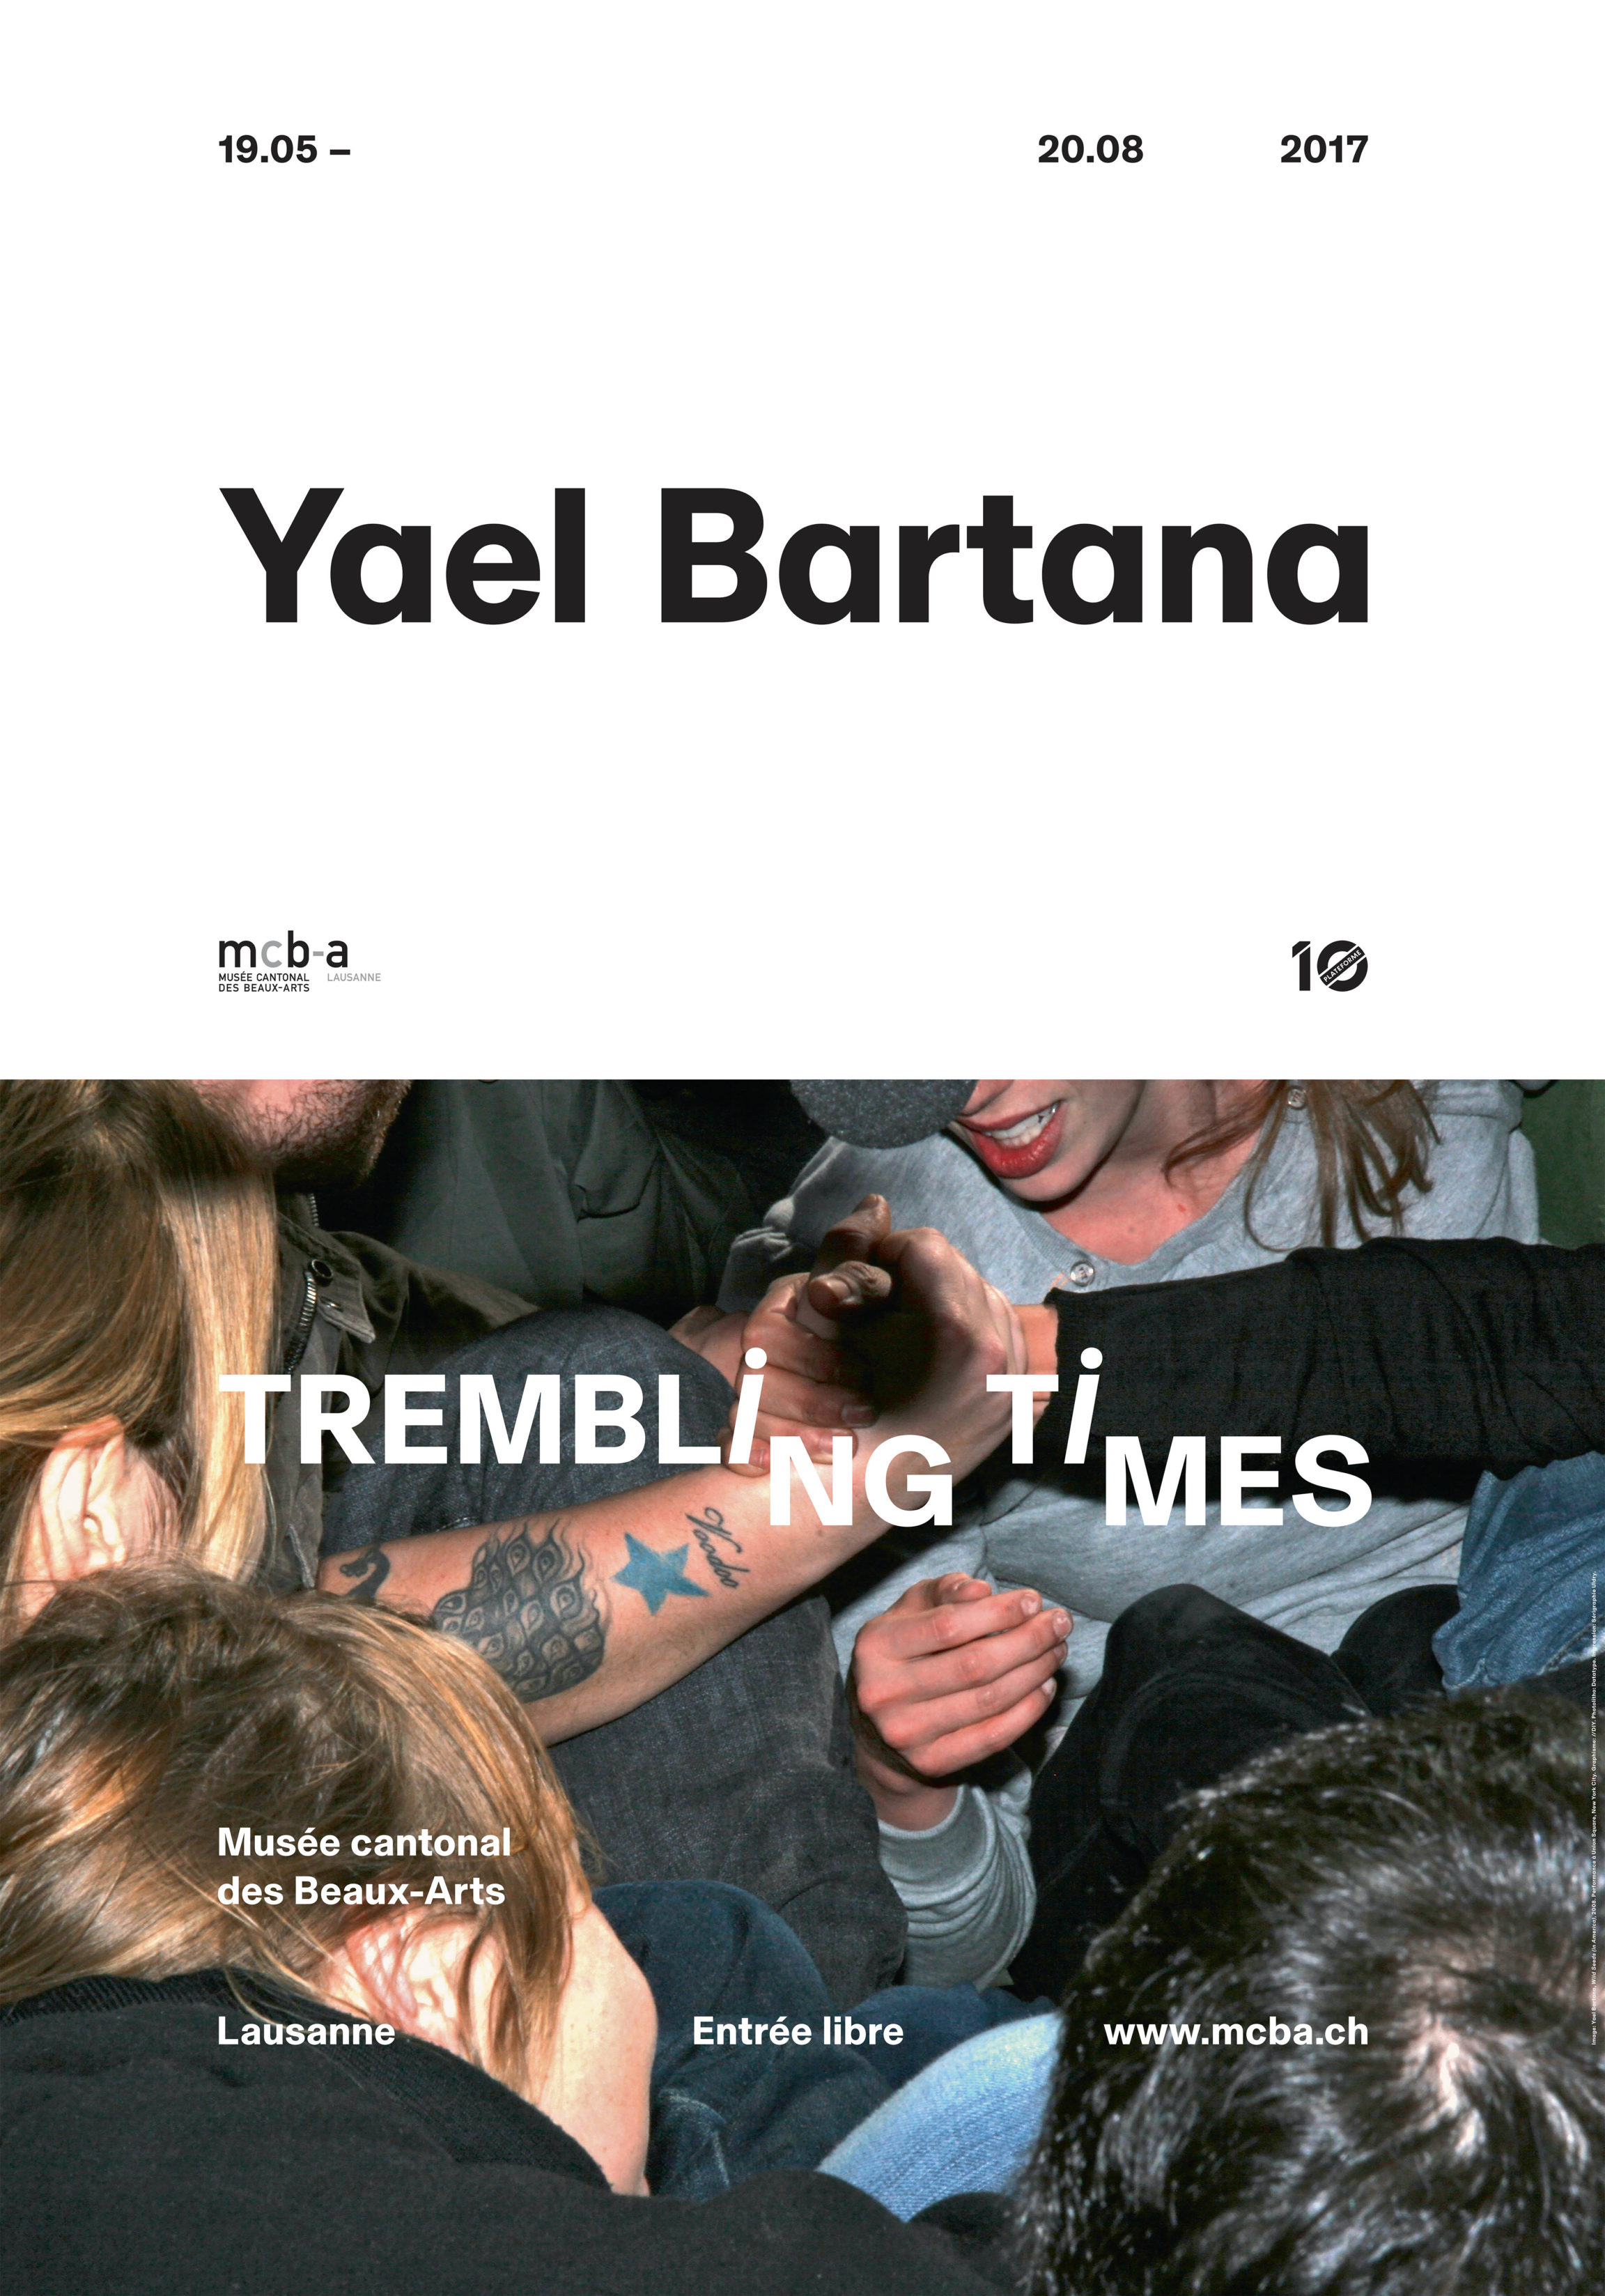 Yael Bartana<br> Trembling Times